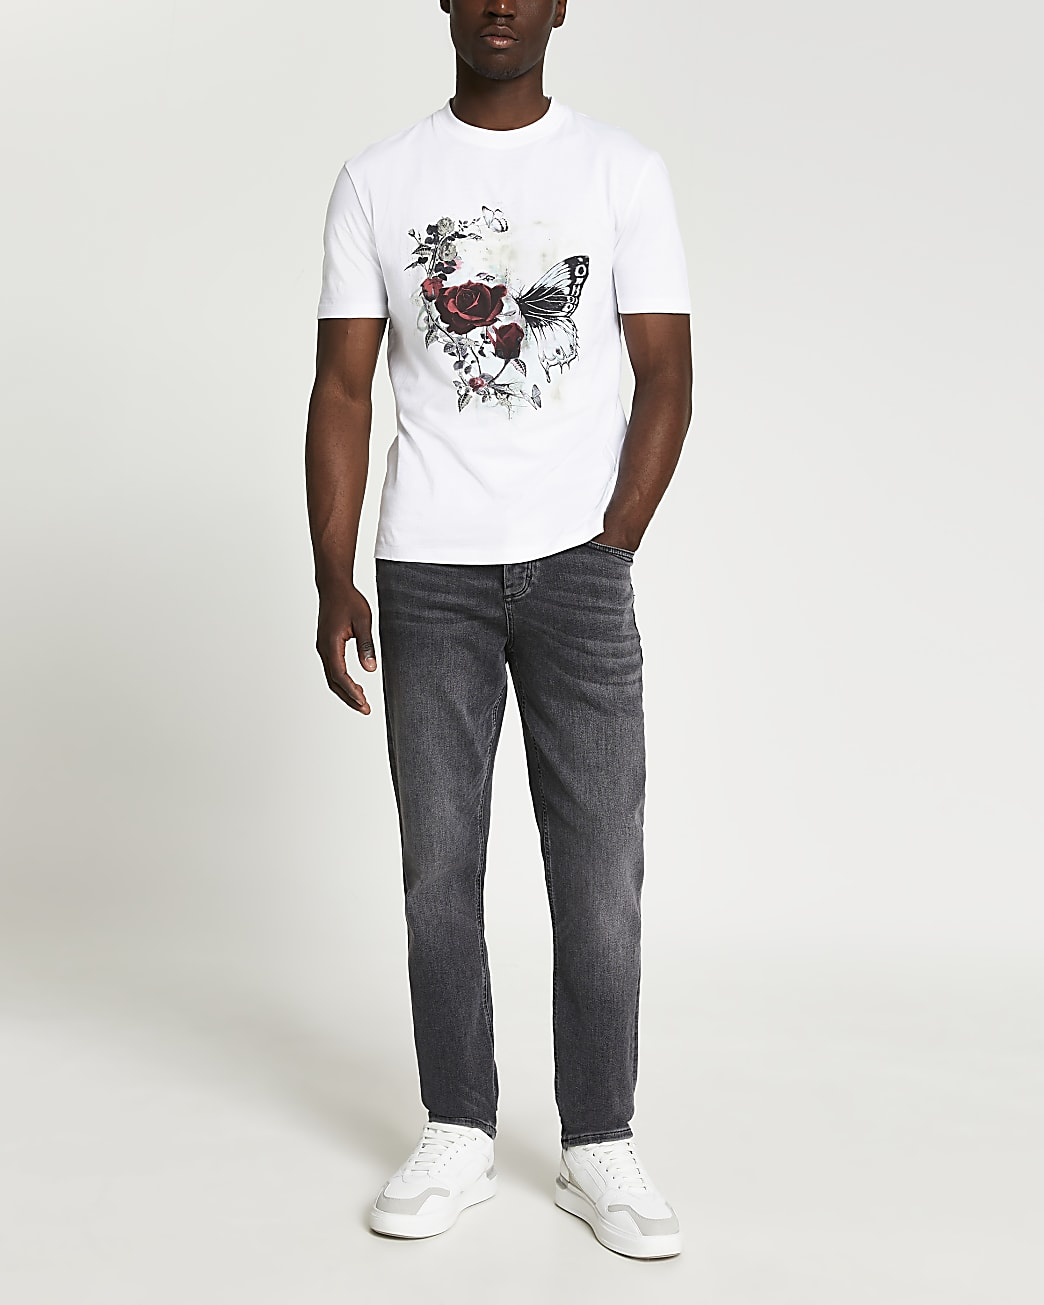 White floral graphic slim fit t-shirt